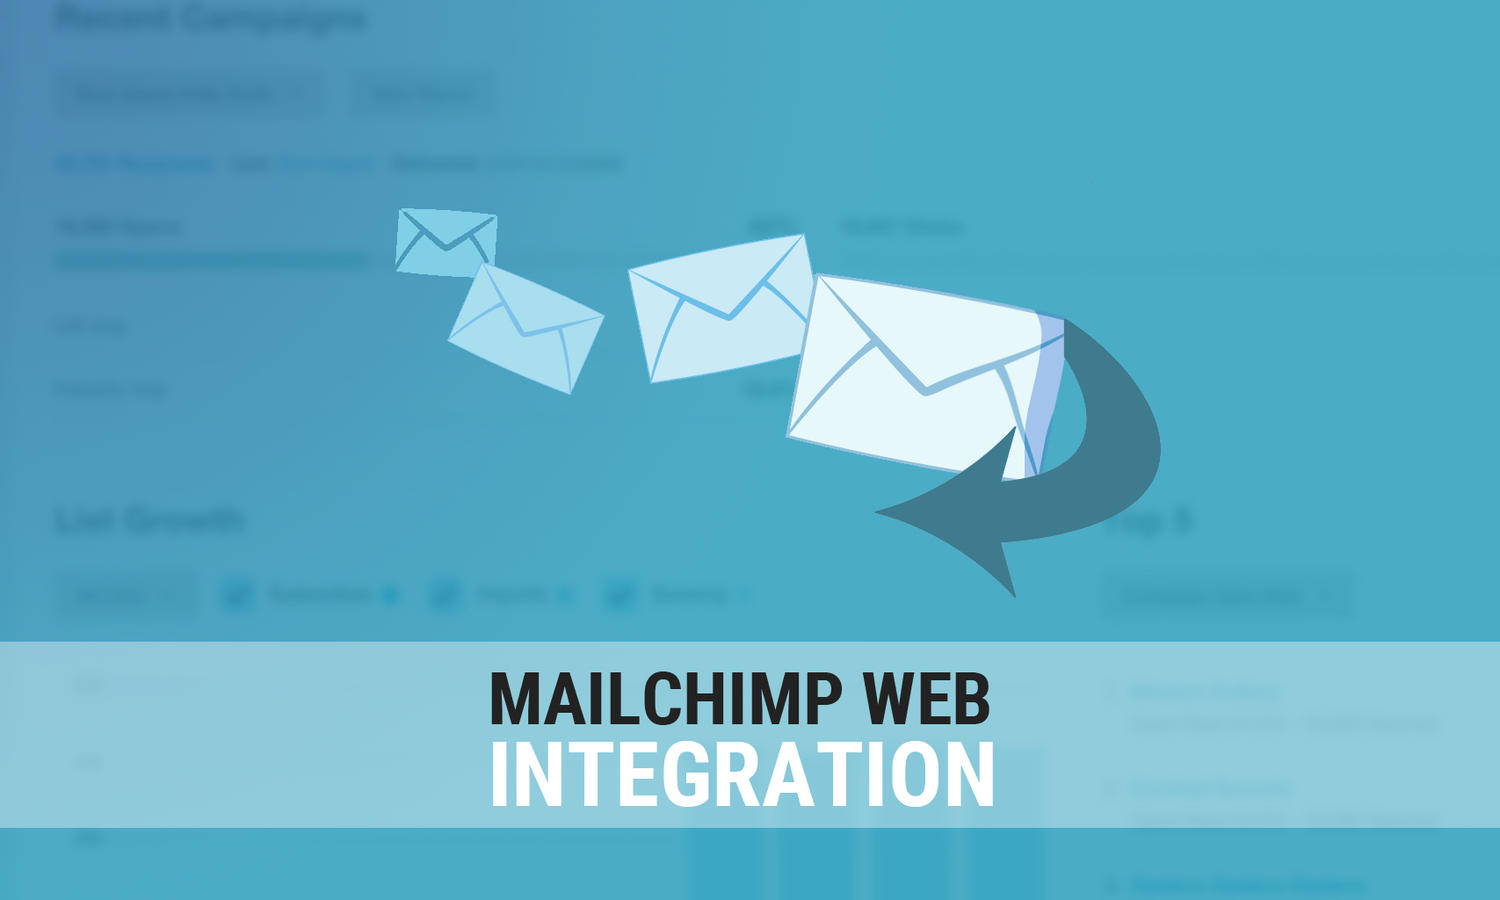 Mailchimp Web Integration by madridnyc - 110921